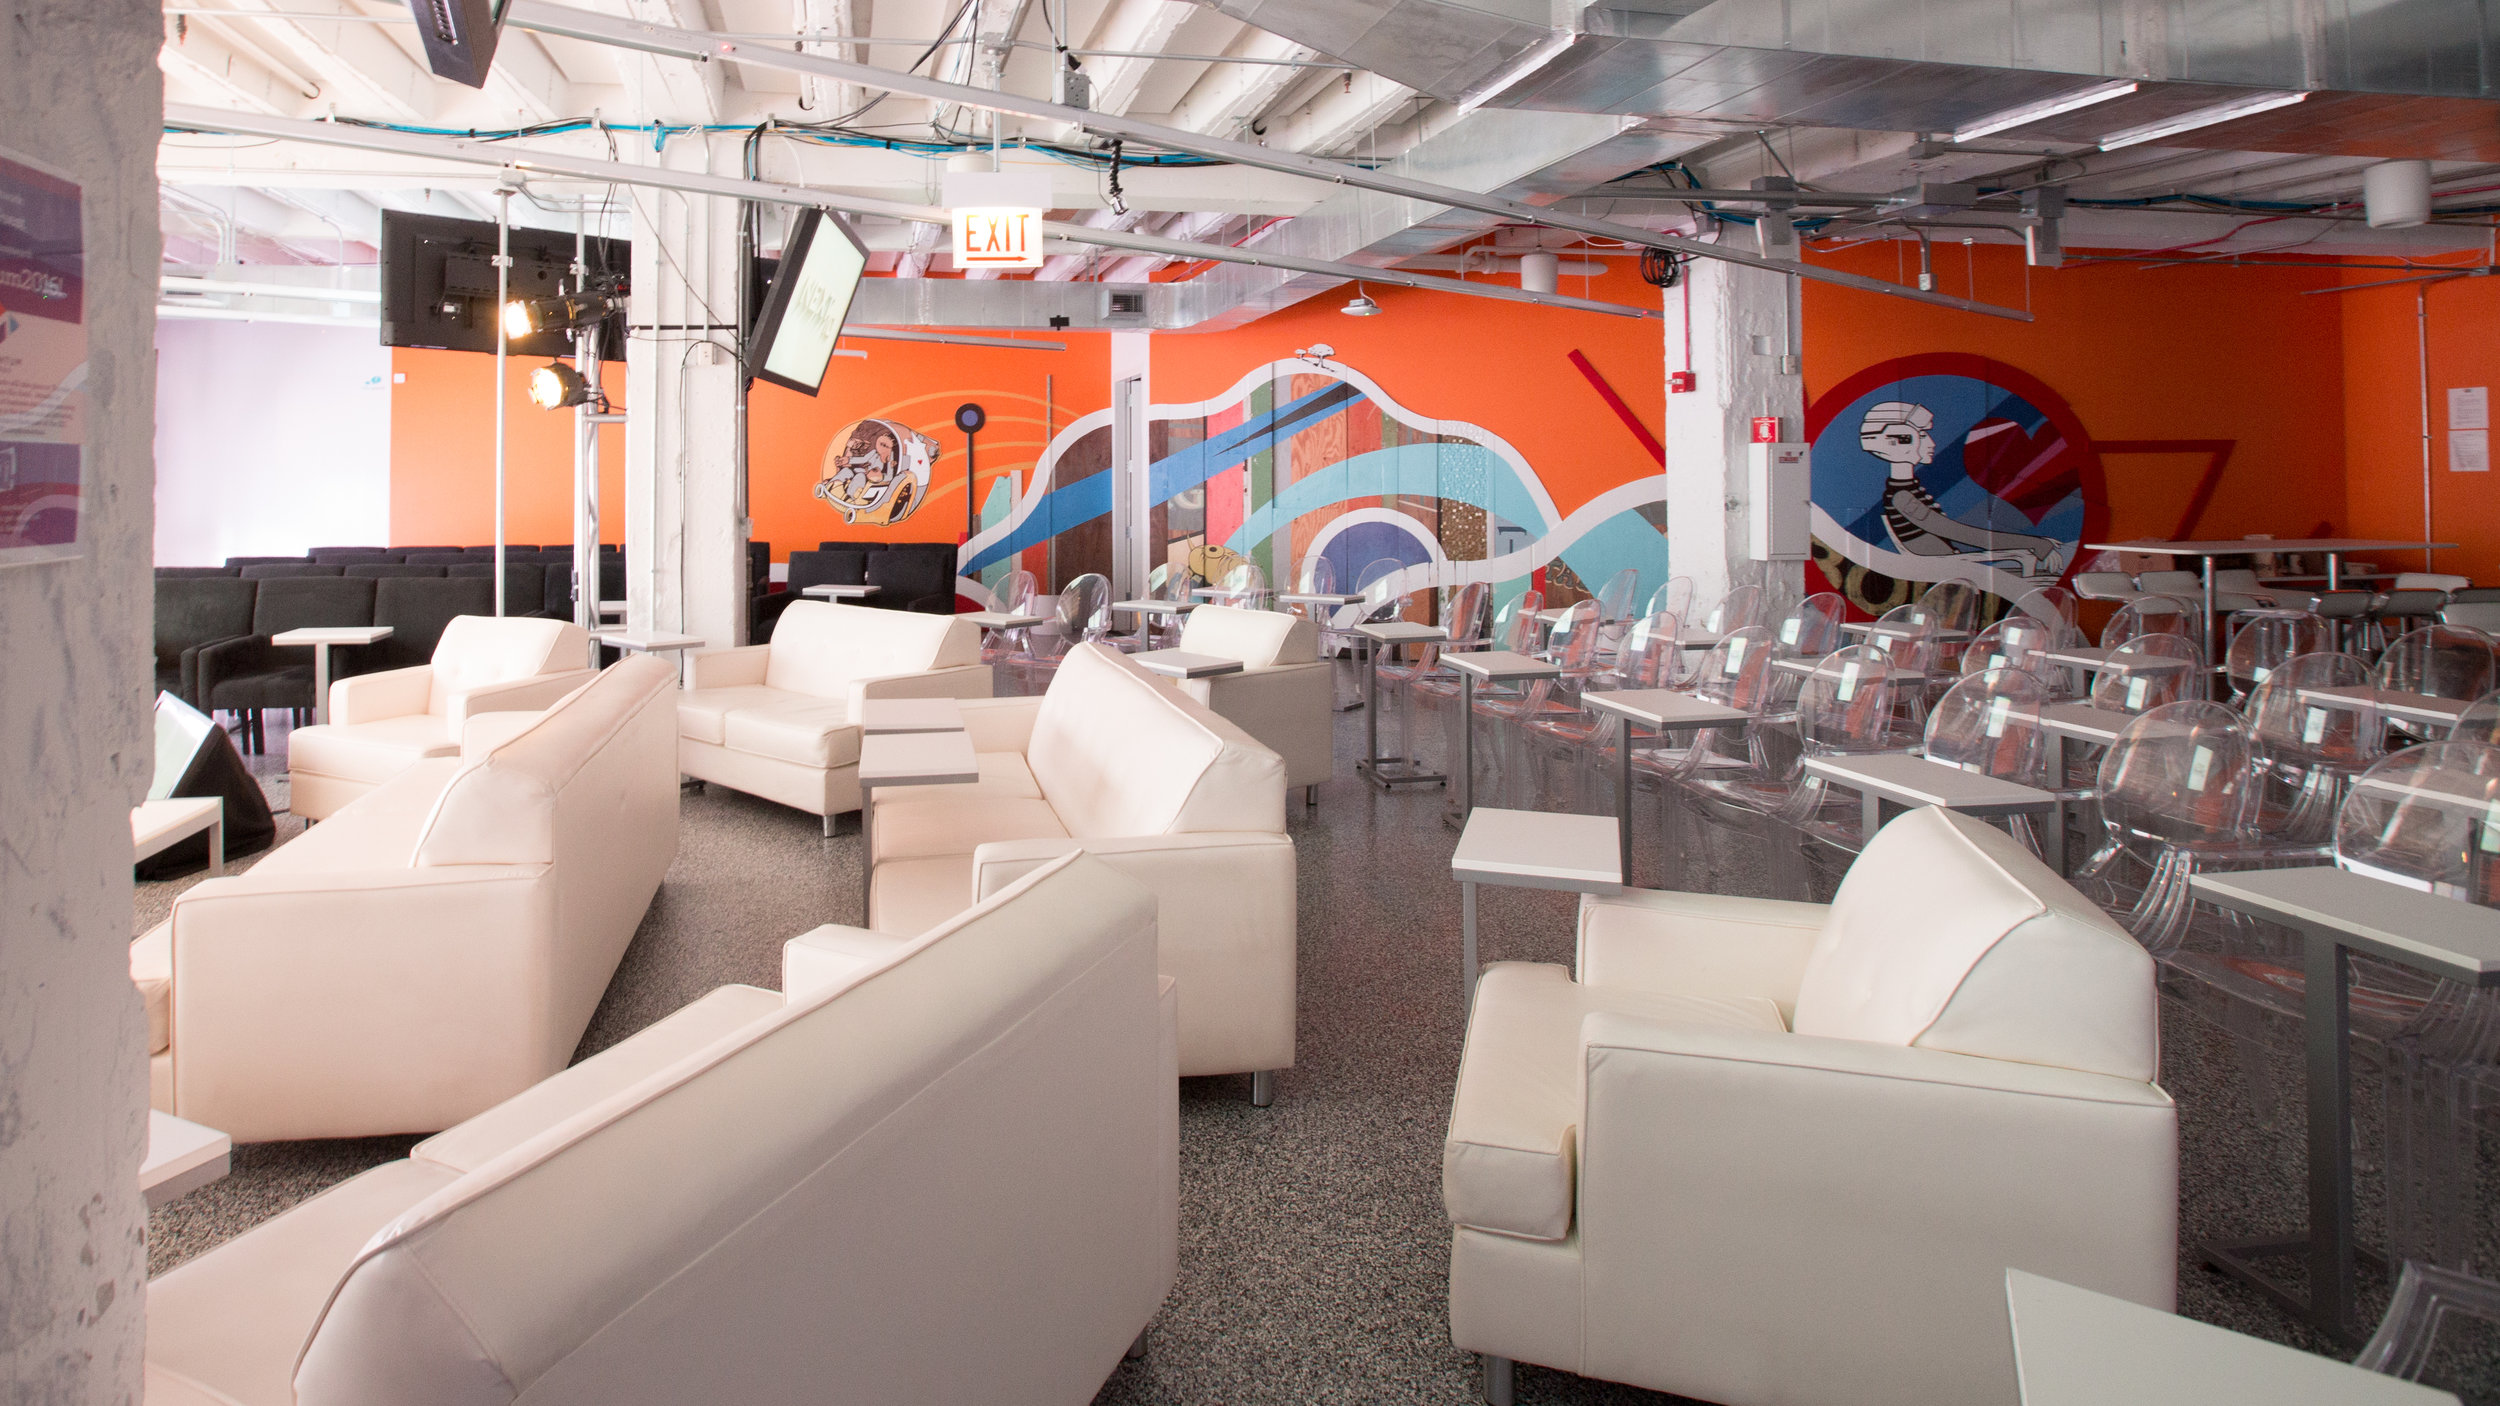 event space seating.jpg